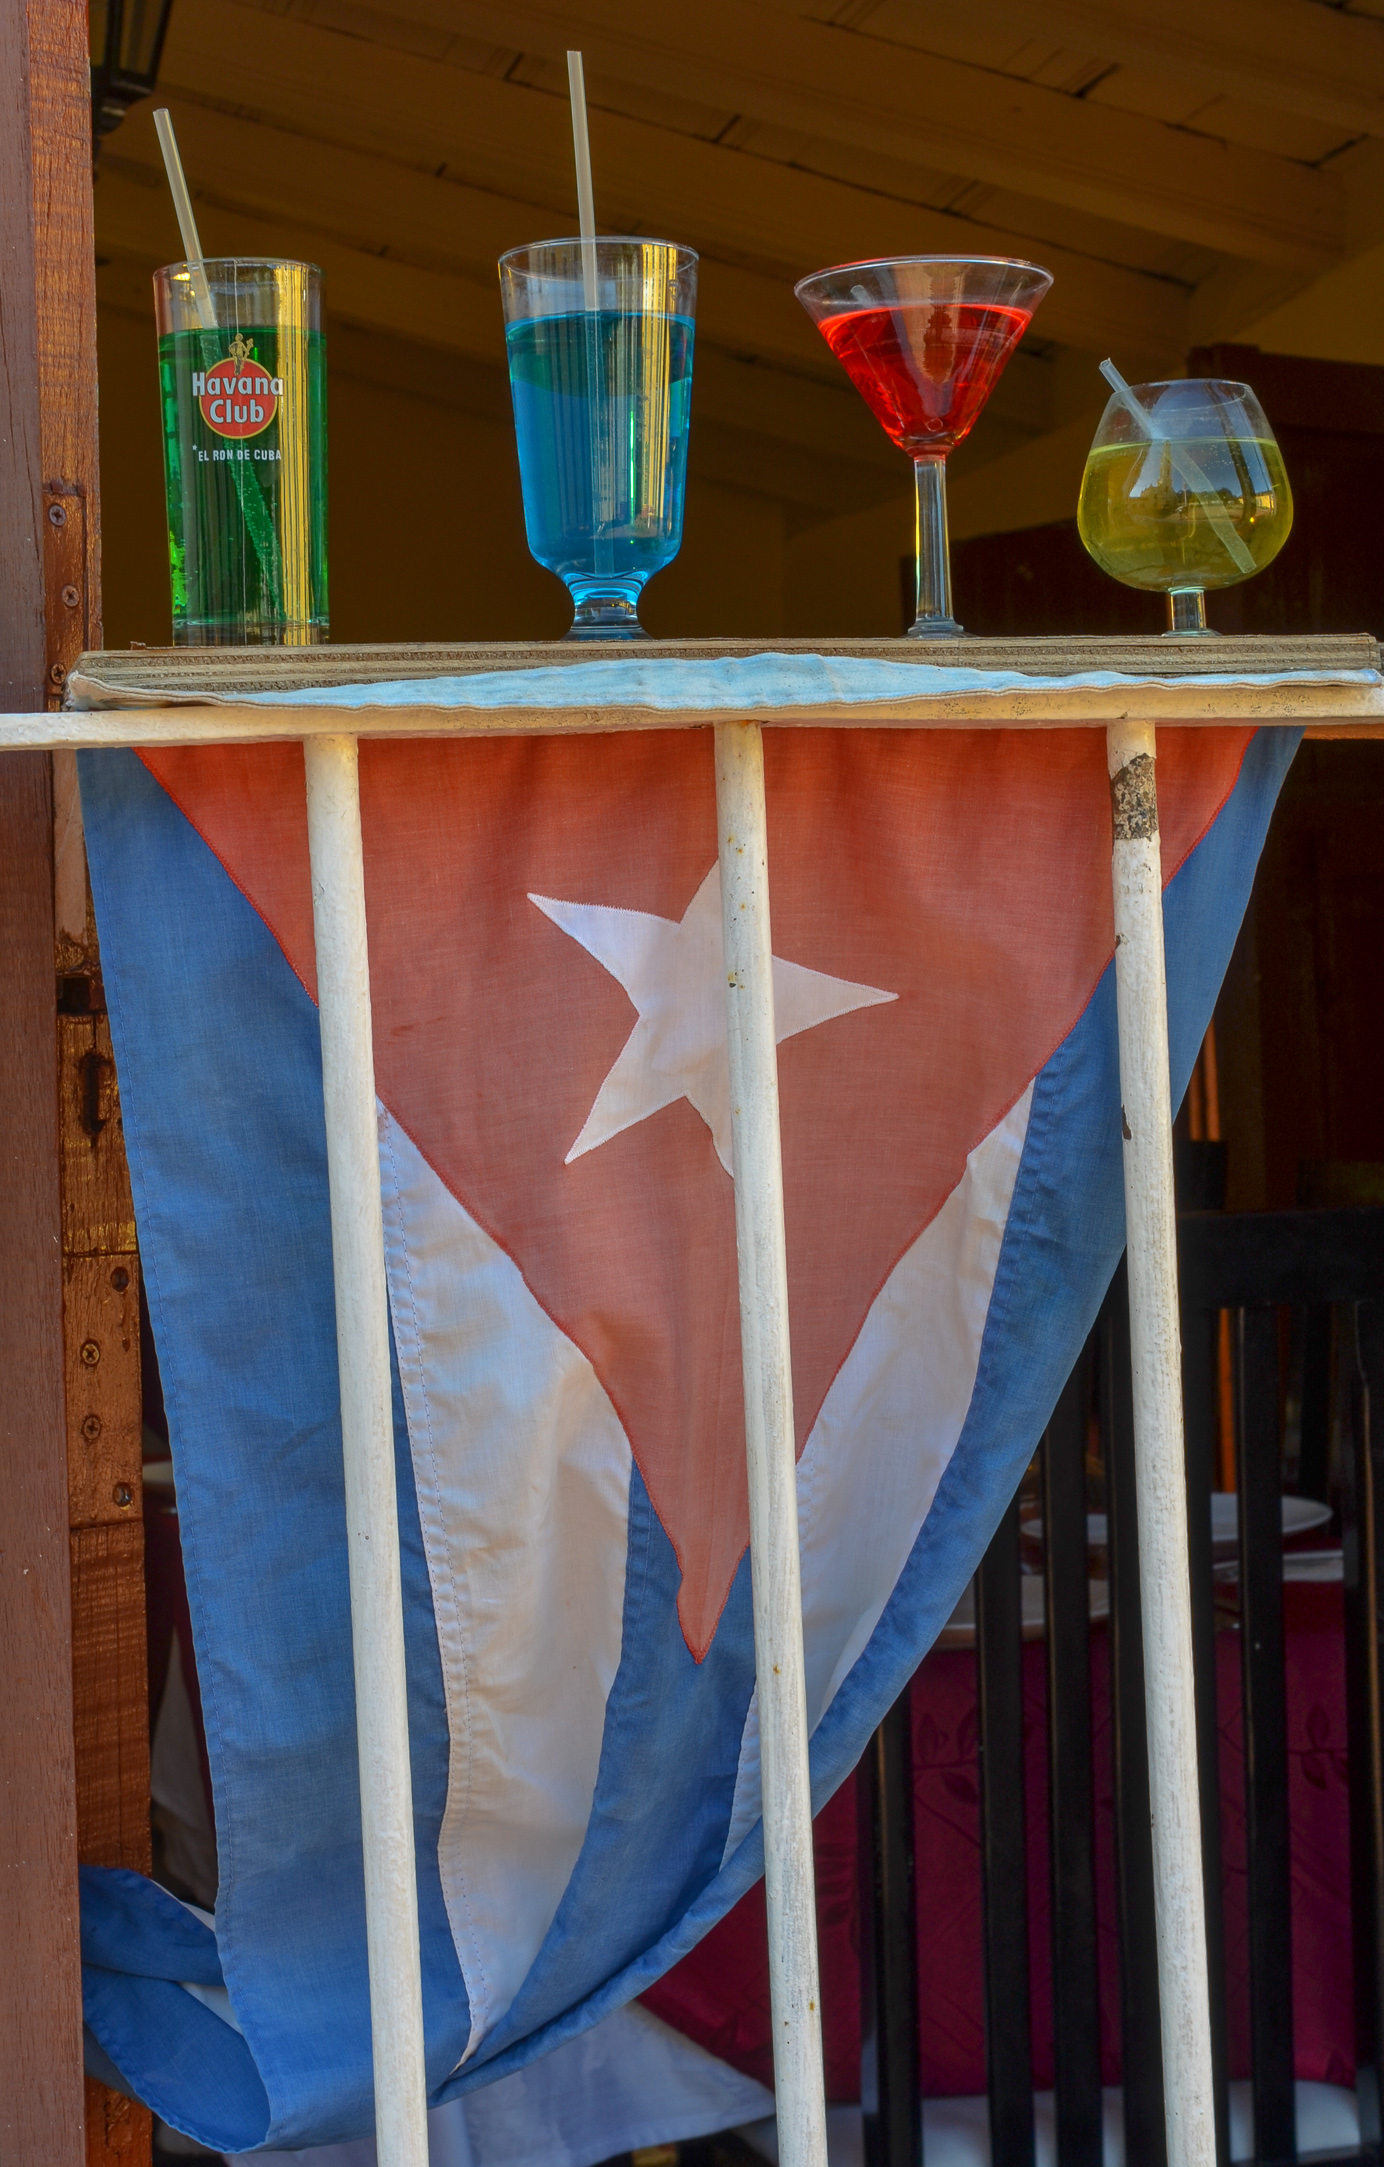 Havana Club Drinks & Cuban Flag - Trinidad Cuba